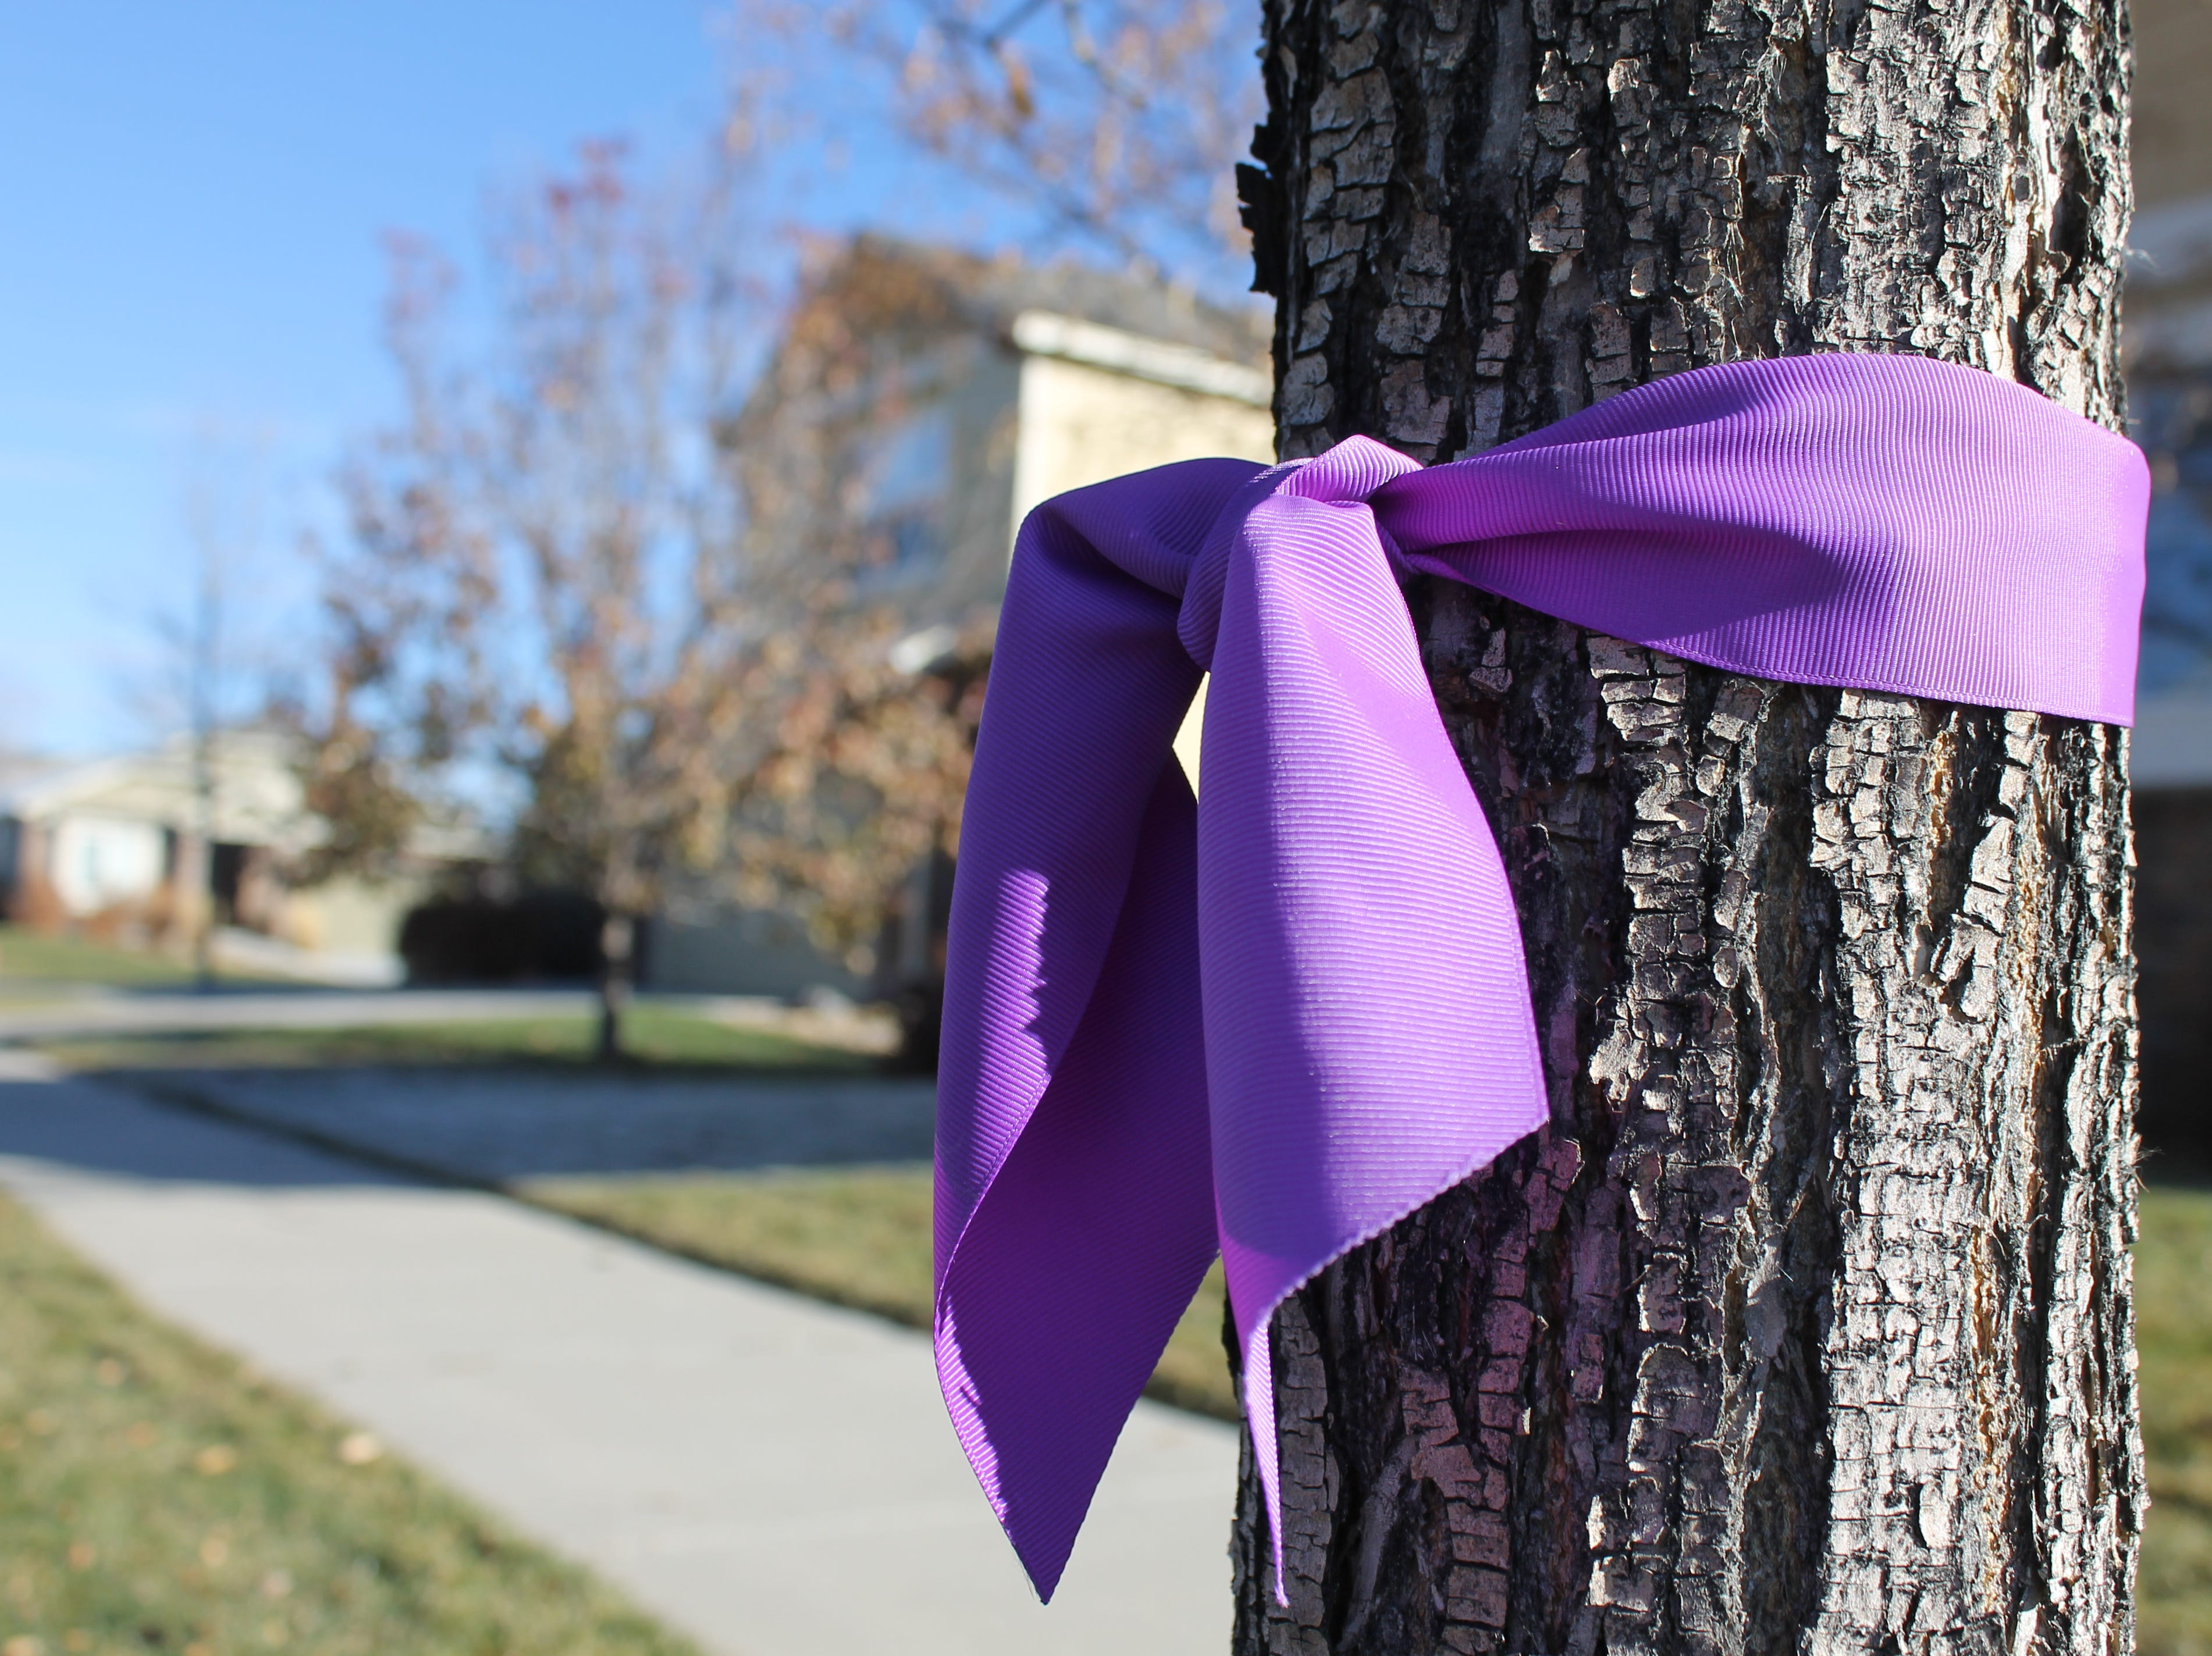 A purple ribbon hung on a tree Monday in the neighborhood where Shanann Watts and her two young daughters Bella and Celeste lived. Angela Wilson, the Town of Frederick's event coordinator, helped distribute the ribbons in September. Some ribbons still stand, honoring the family.